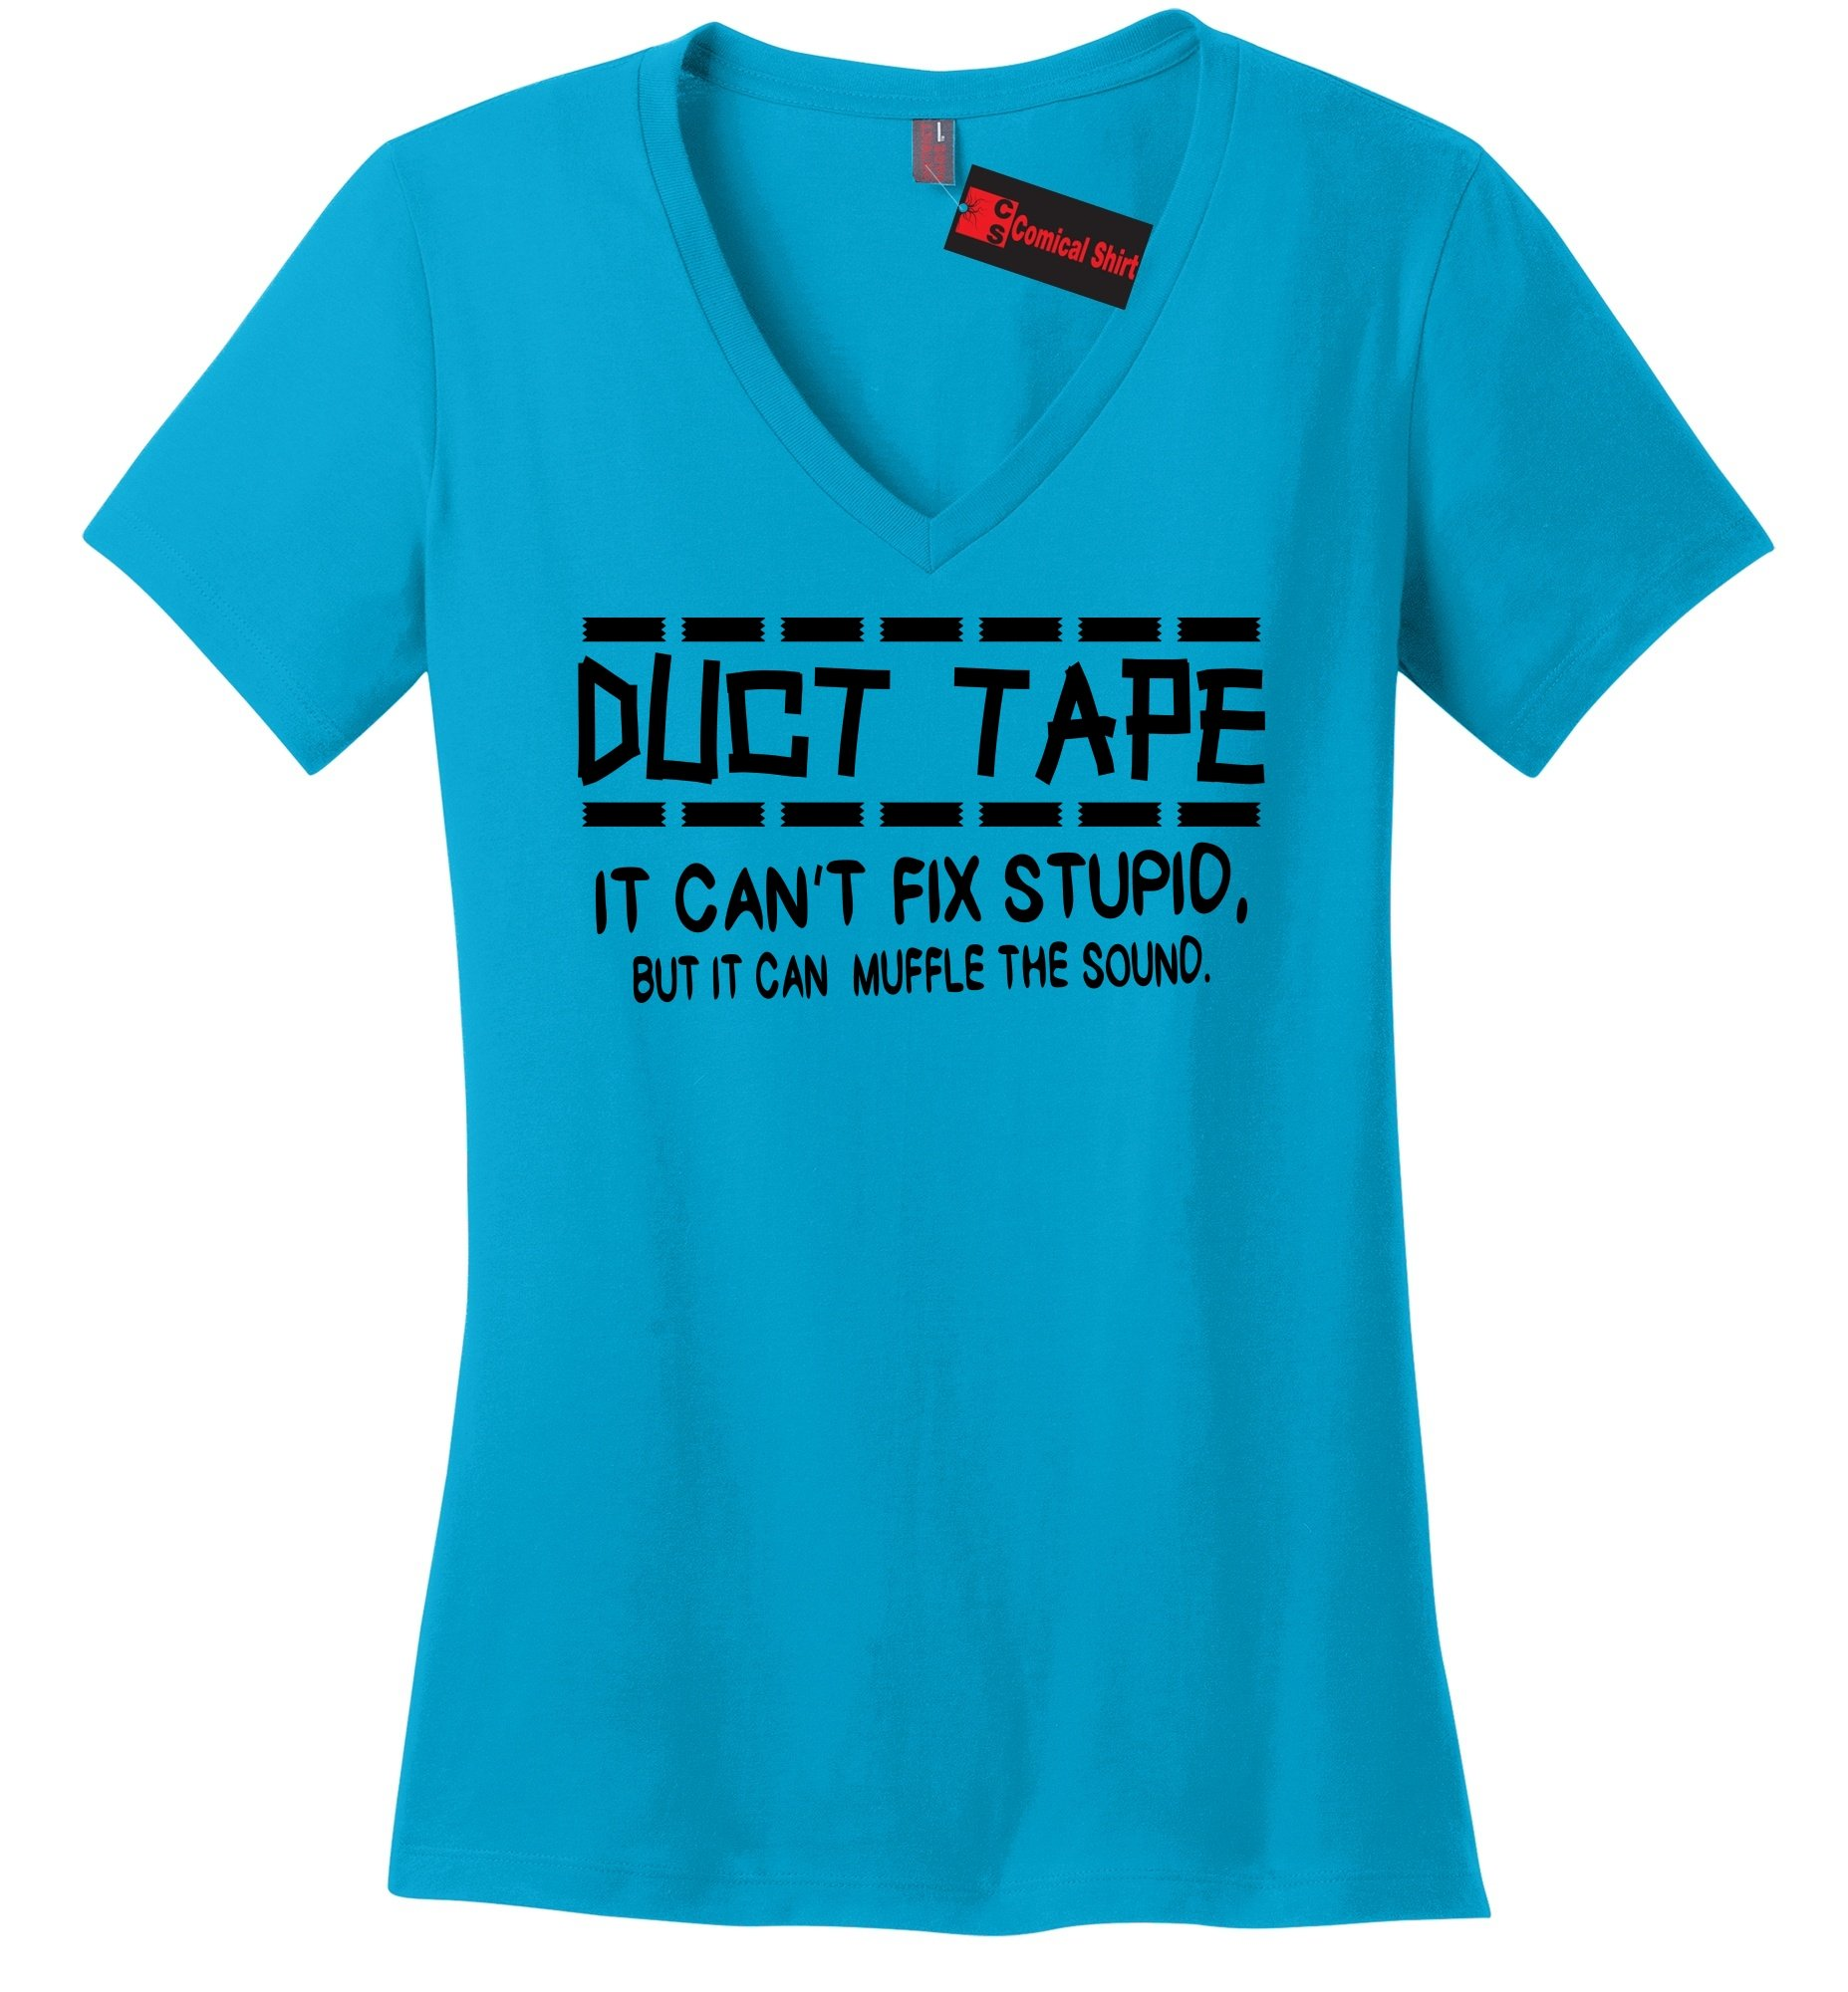 Comical Shirt Ladies Duct Tape Can't Fix Stupid Muffle Sound Turquoise XL